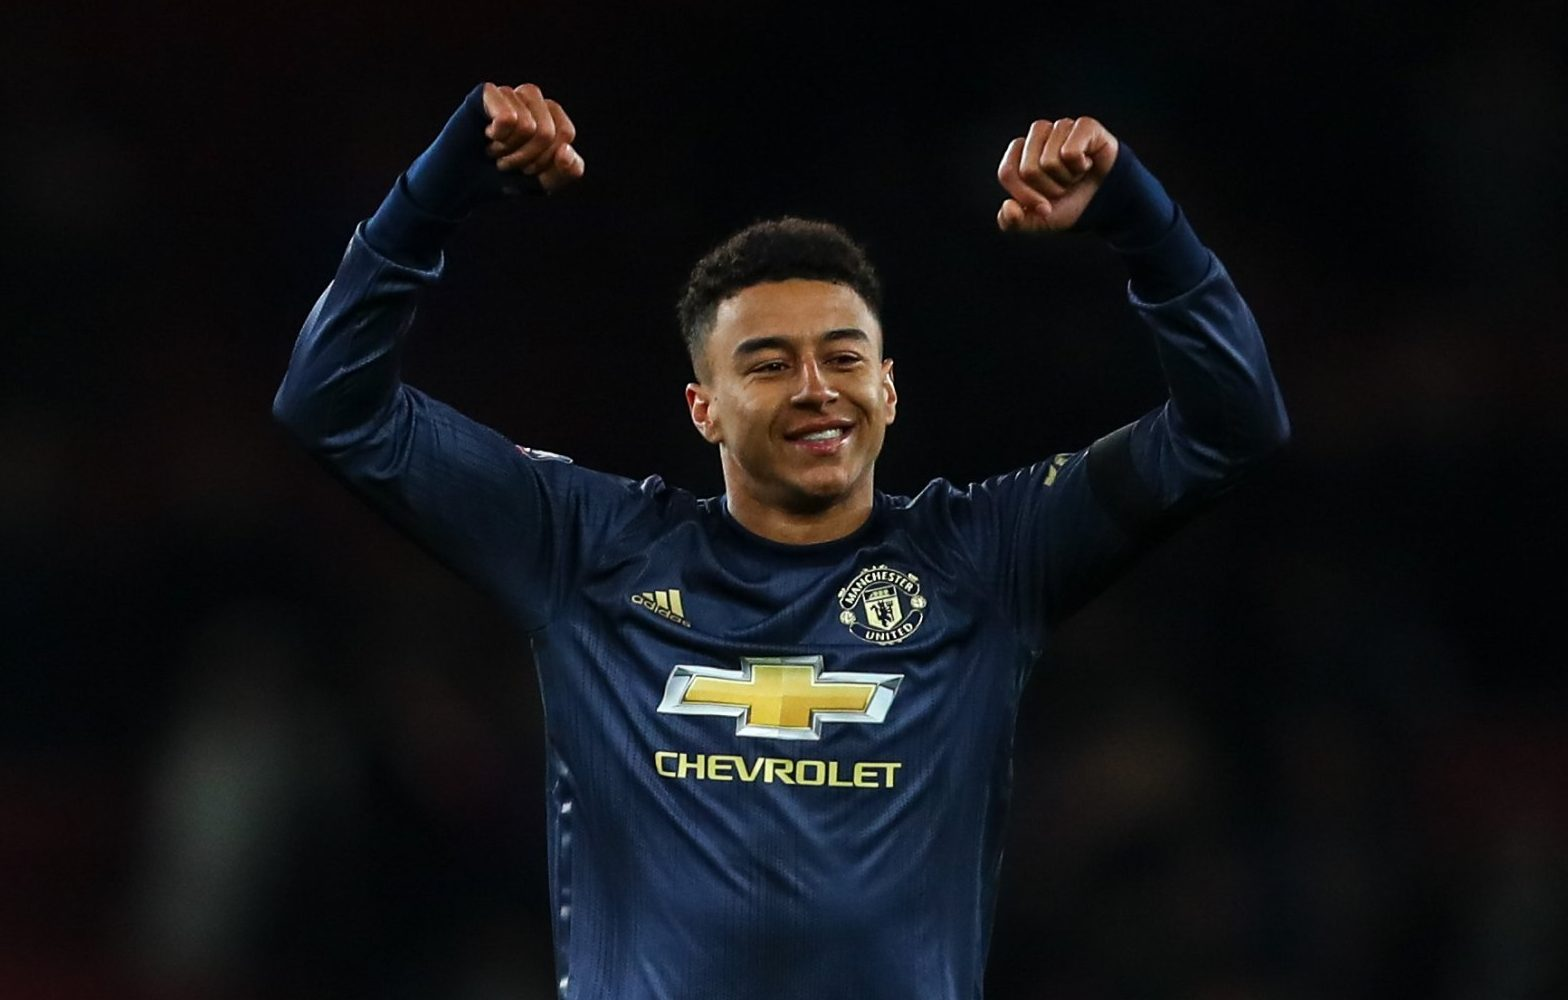 LONDON, ENGLAND - JANUARY 25: Jesse Lingard of Manchester United celebrates at full time during the FA Cup Fourth Round match between Arsenal and Manchester United at Emirates Stadium on January 25, 2019 in London, United Kingdom. (Photo by Robbie Jay Barratt - AMA/Getty Images)